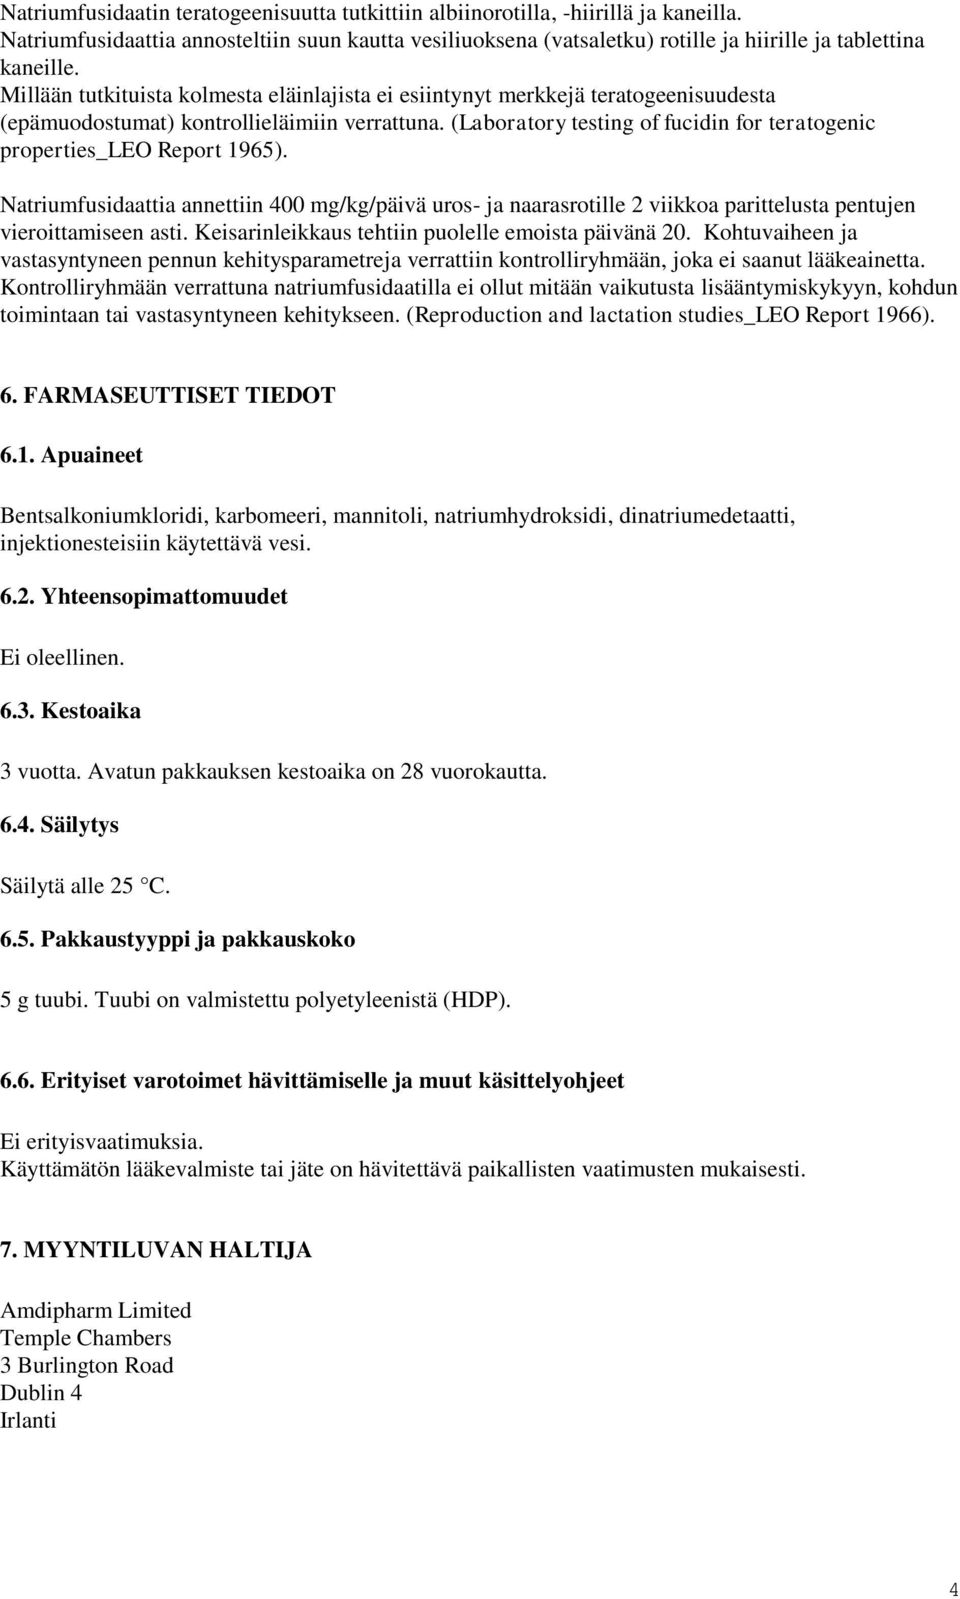 (Laboratory testing of fucidin for teratogenic properties_leo Report 1965). Natriumfusidaattia annettiin 400 mg/kg/päivä uros- ja naarasrotille 2 viikkoa parittelusta pentujen vieroittamiseen asti.